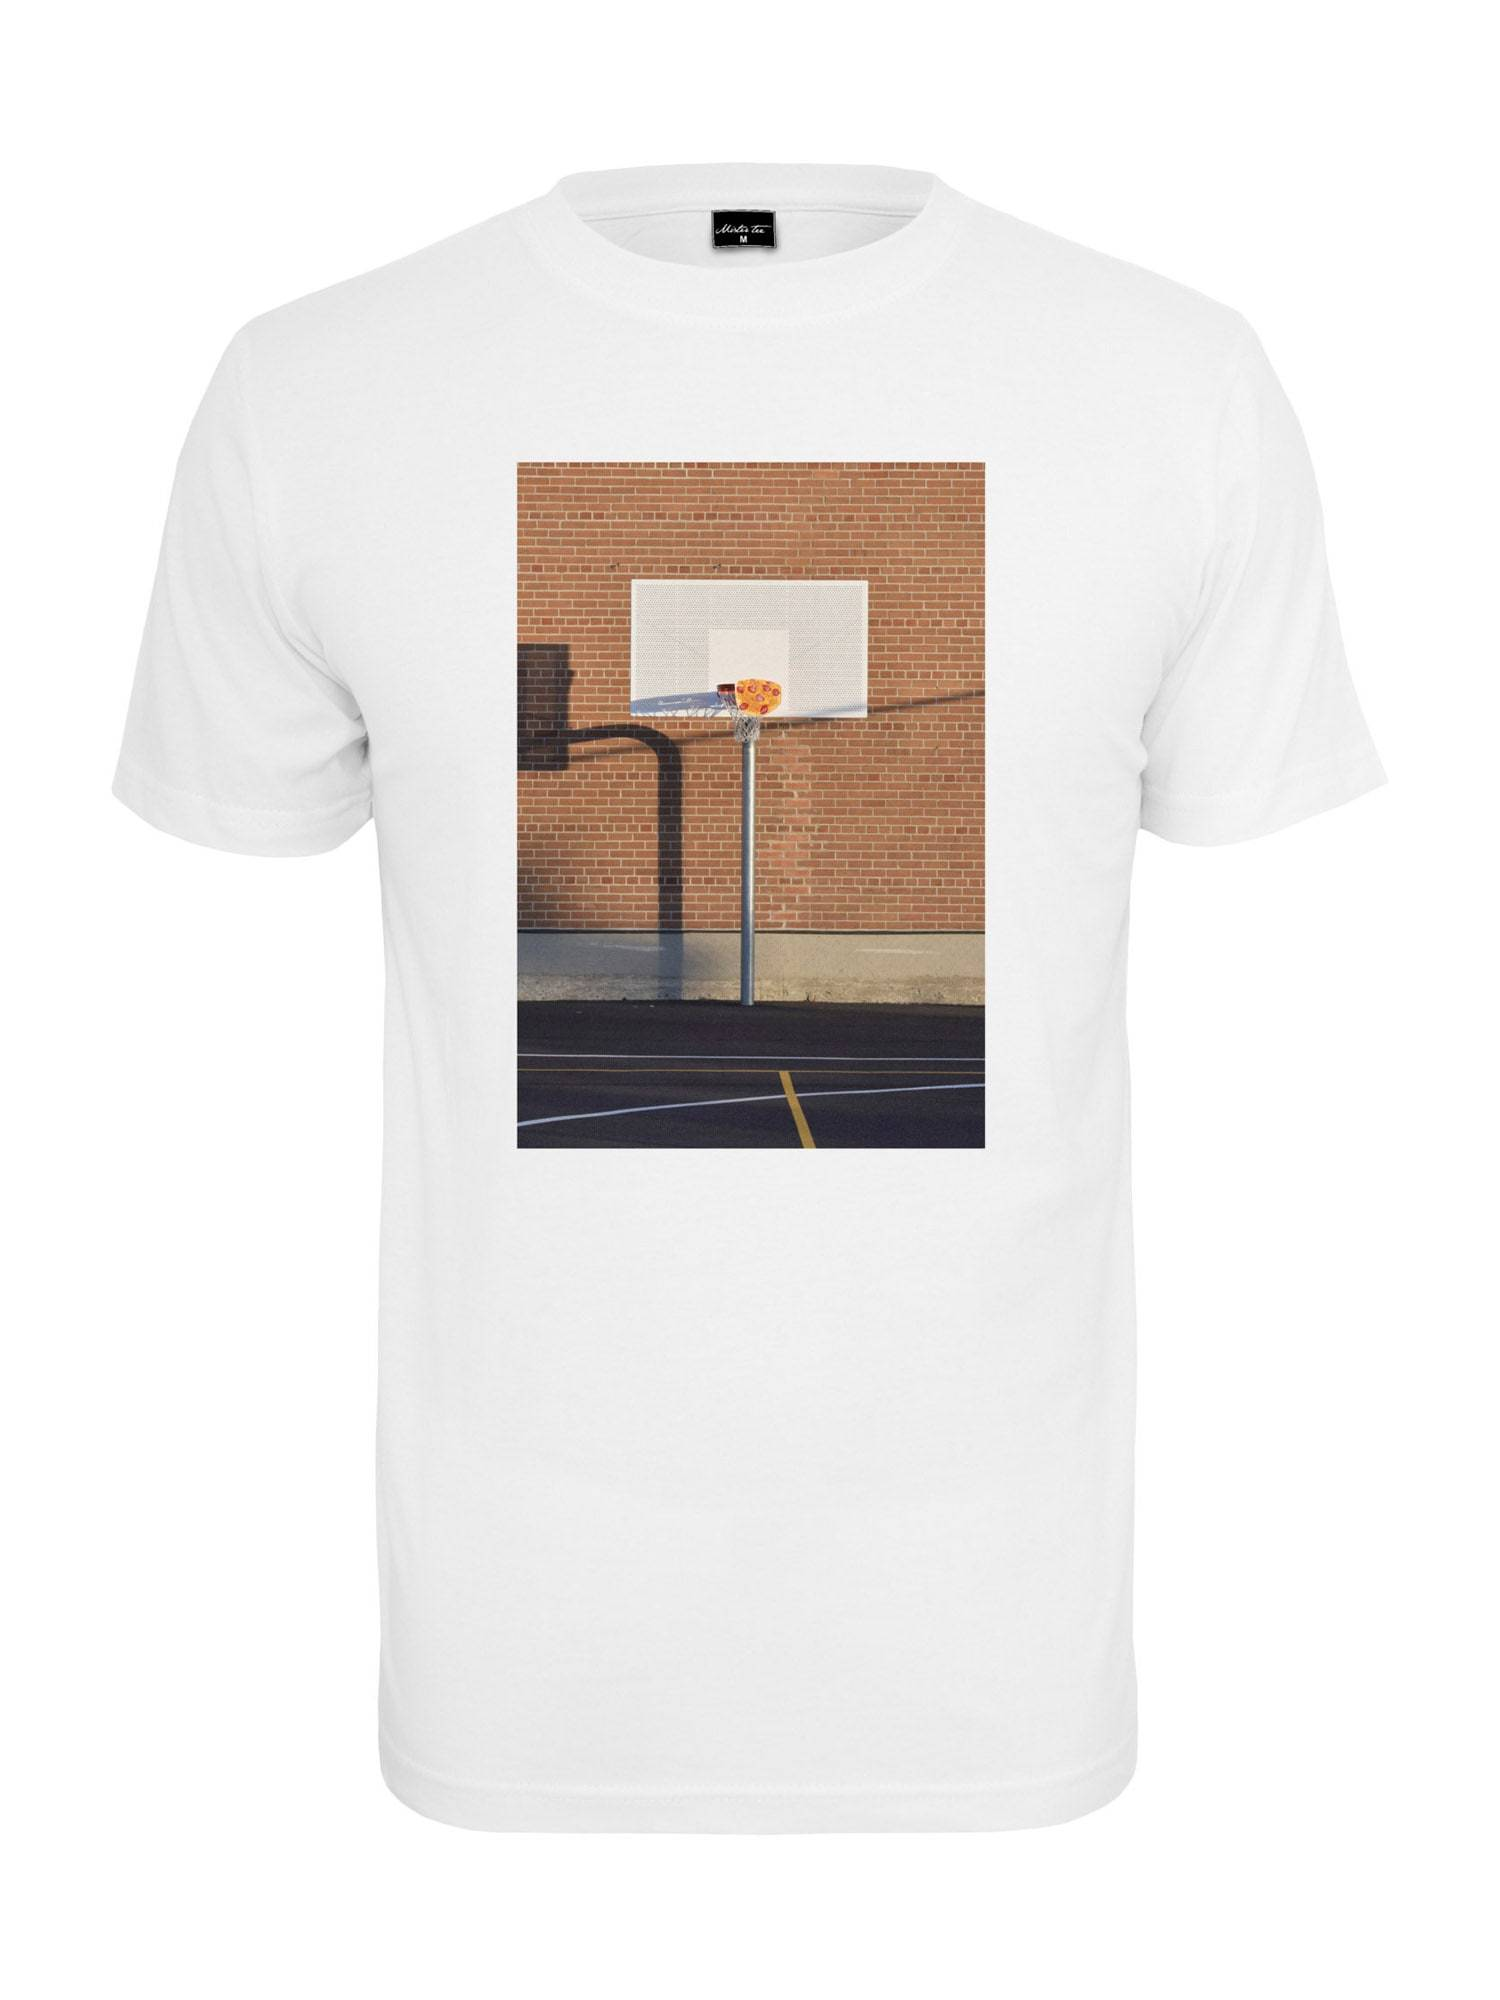 Tee T-Shirt 'Pizza Basketball Court'  - Blanc - Taille: XL - male